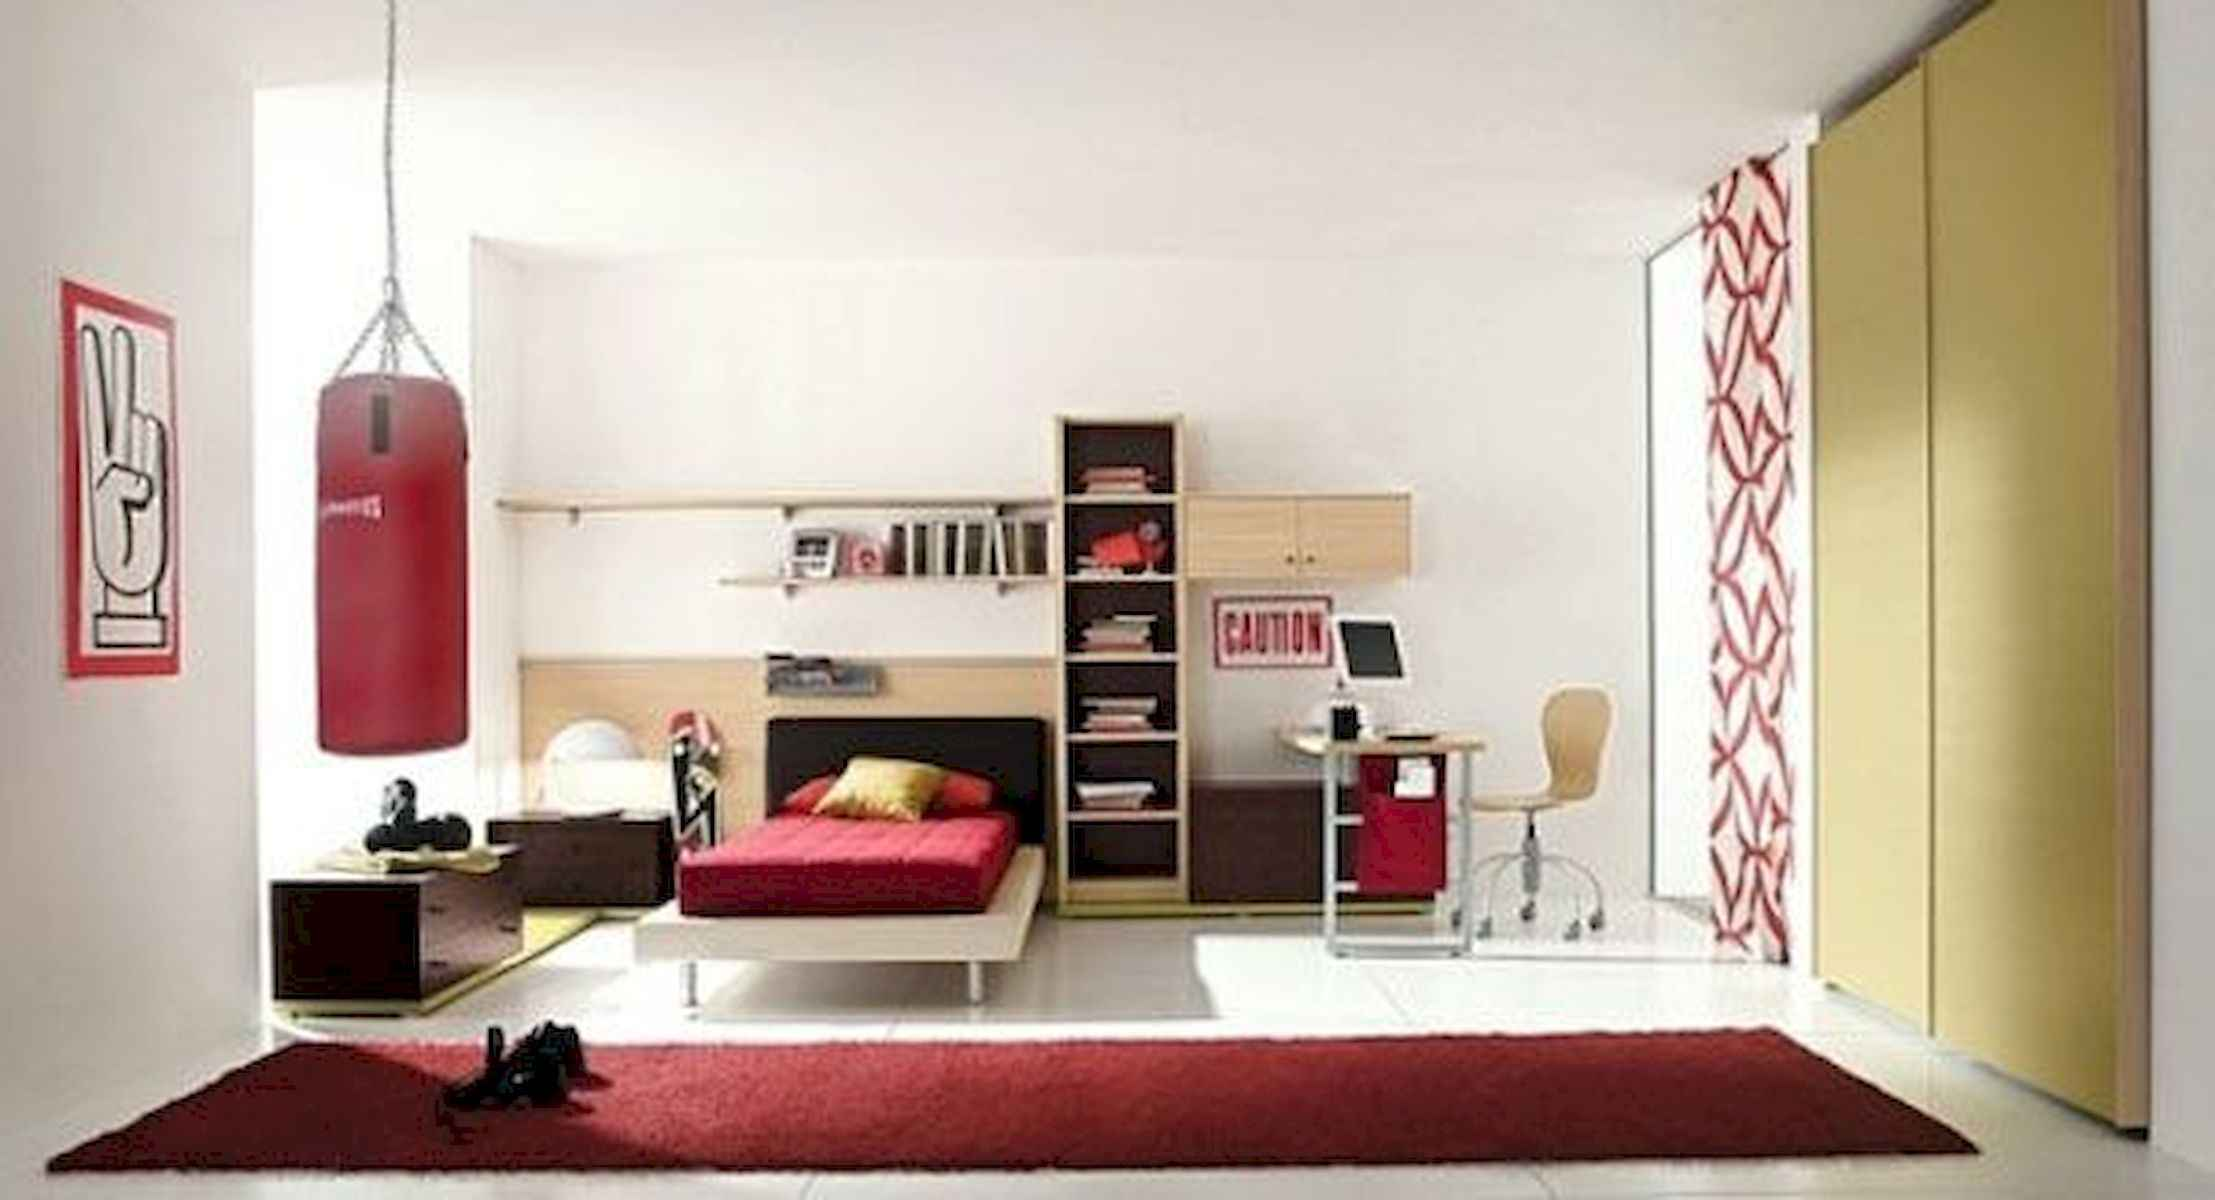 60 Gorgeous College Dorm Room Decorating Ideas And Makeover (12)